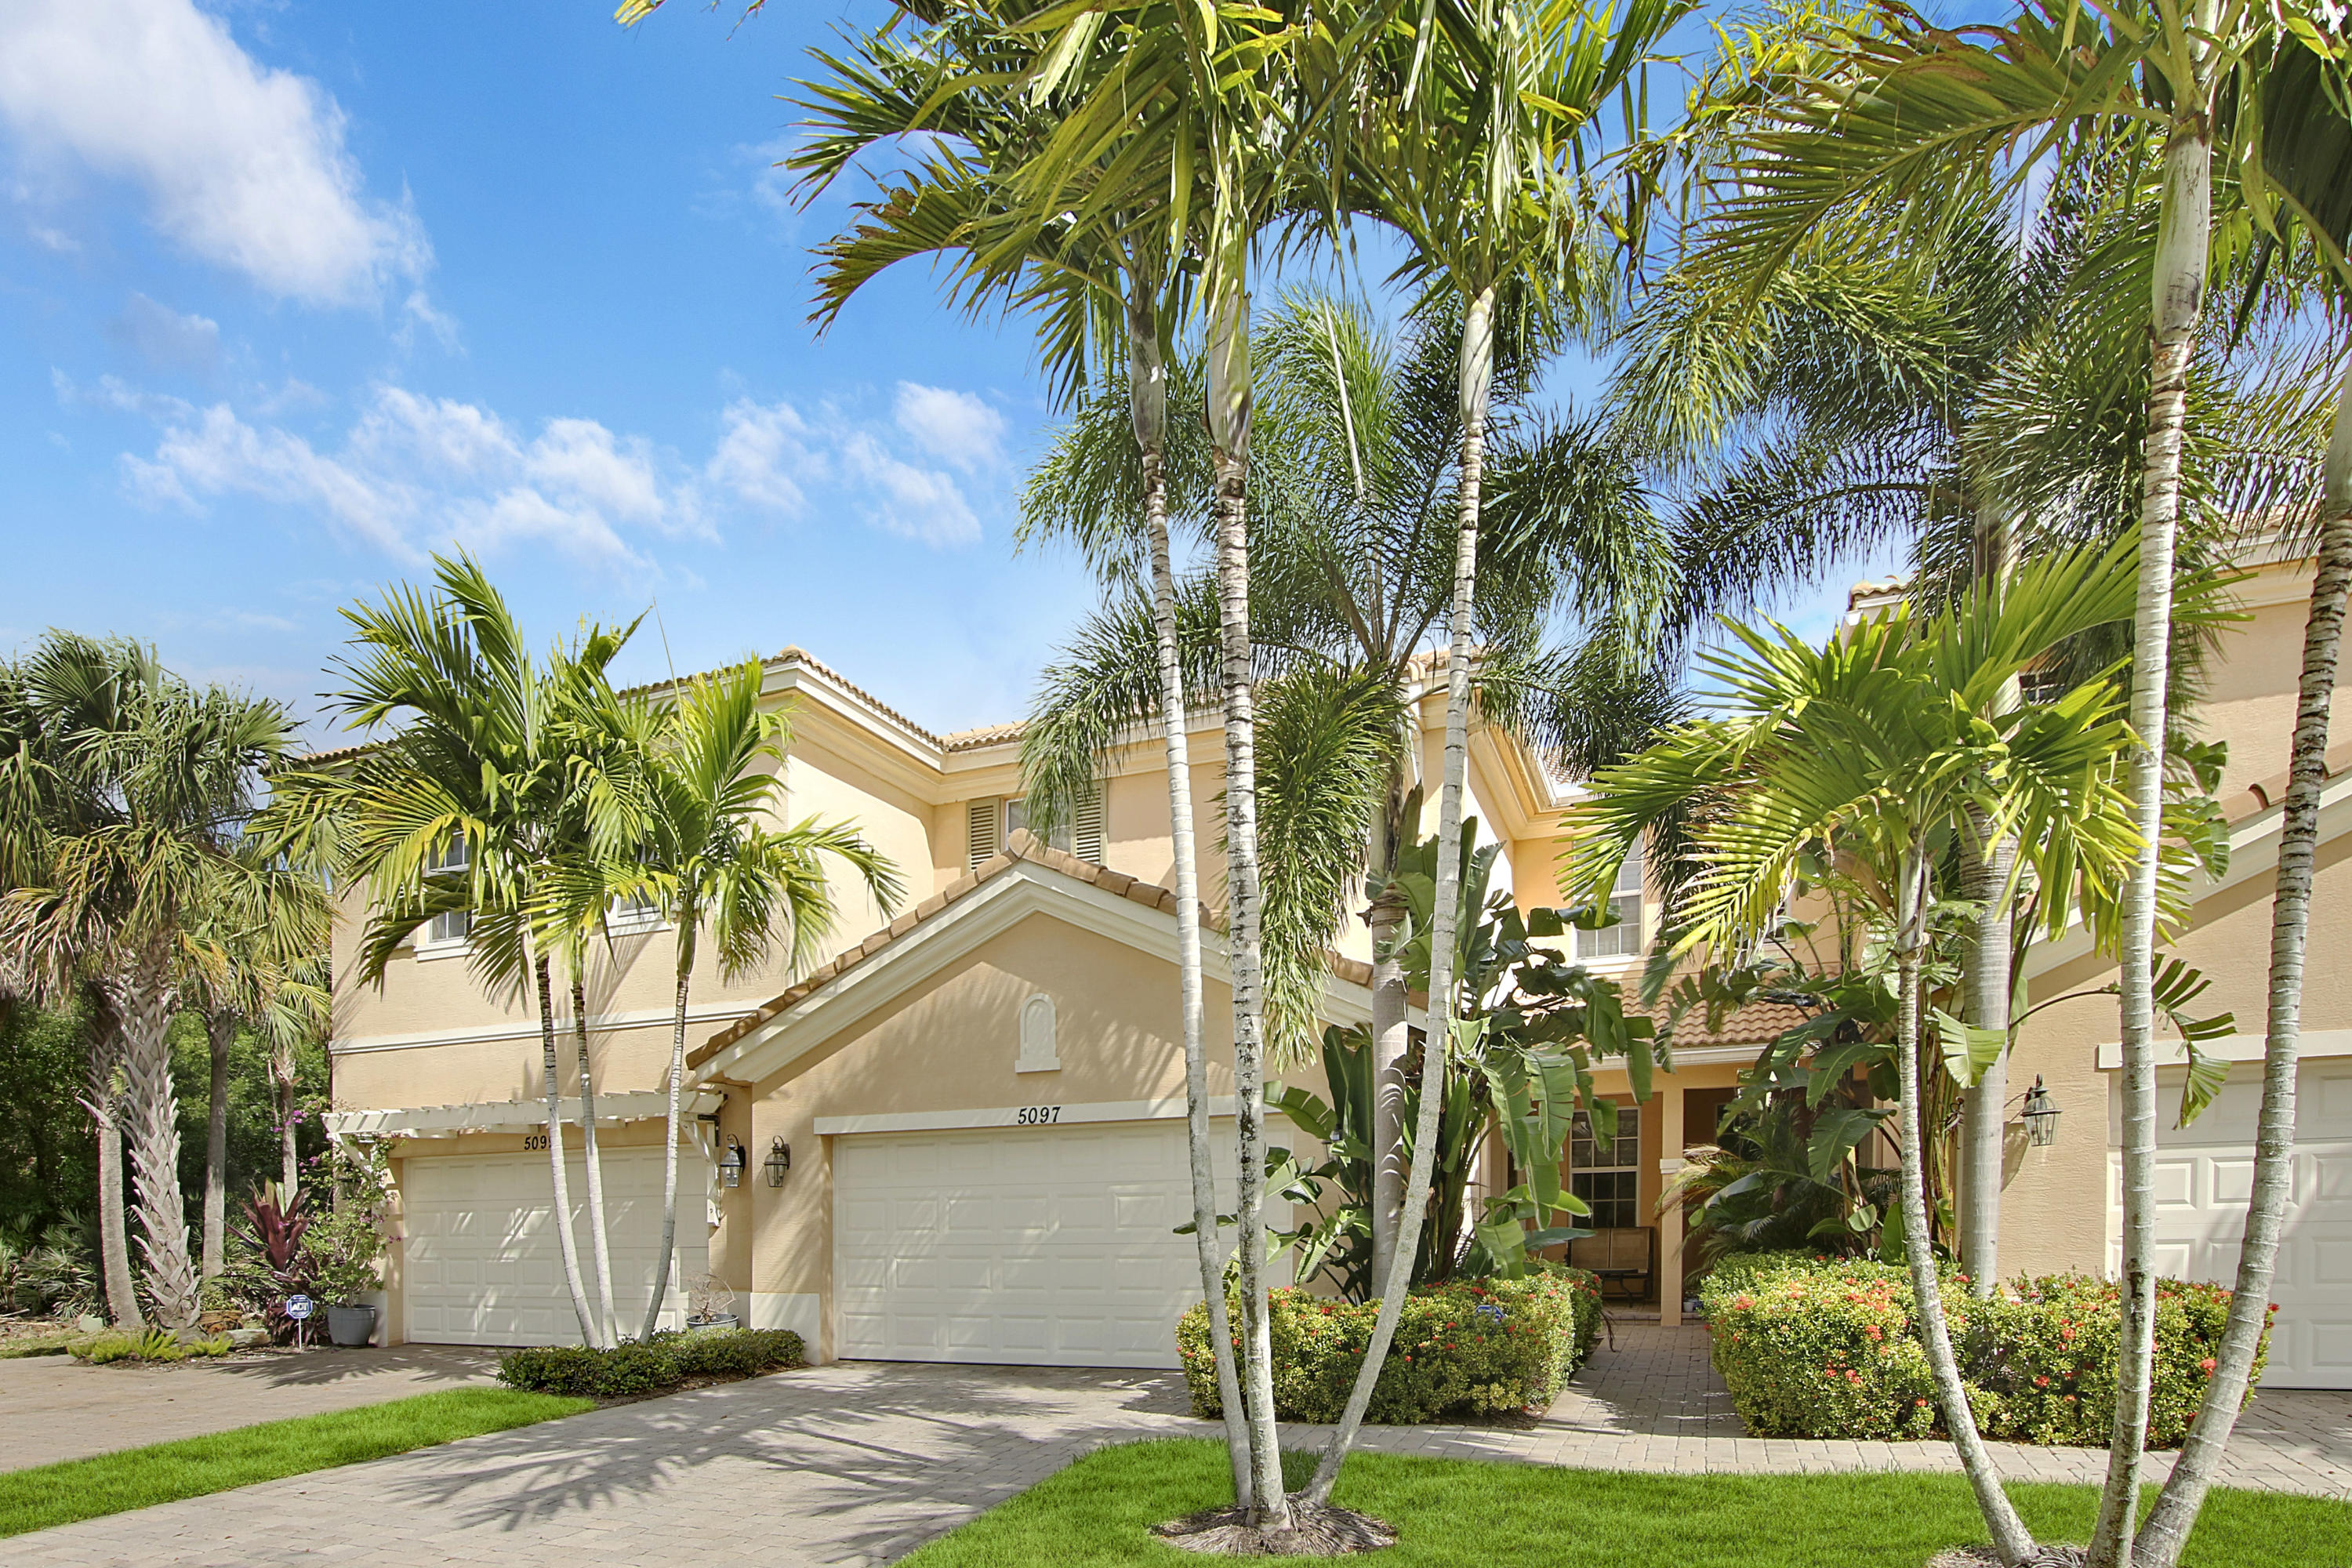 Home for sale in Paloma / Kolter Homes Palm Beach Gardens Florida